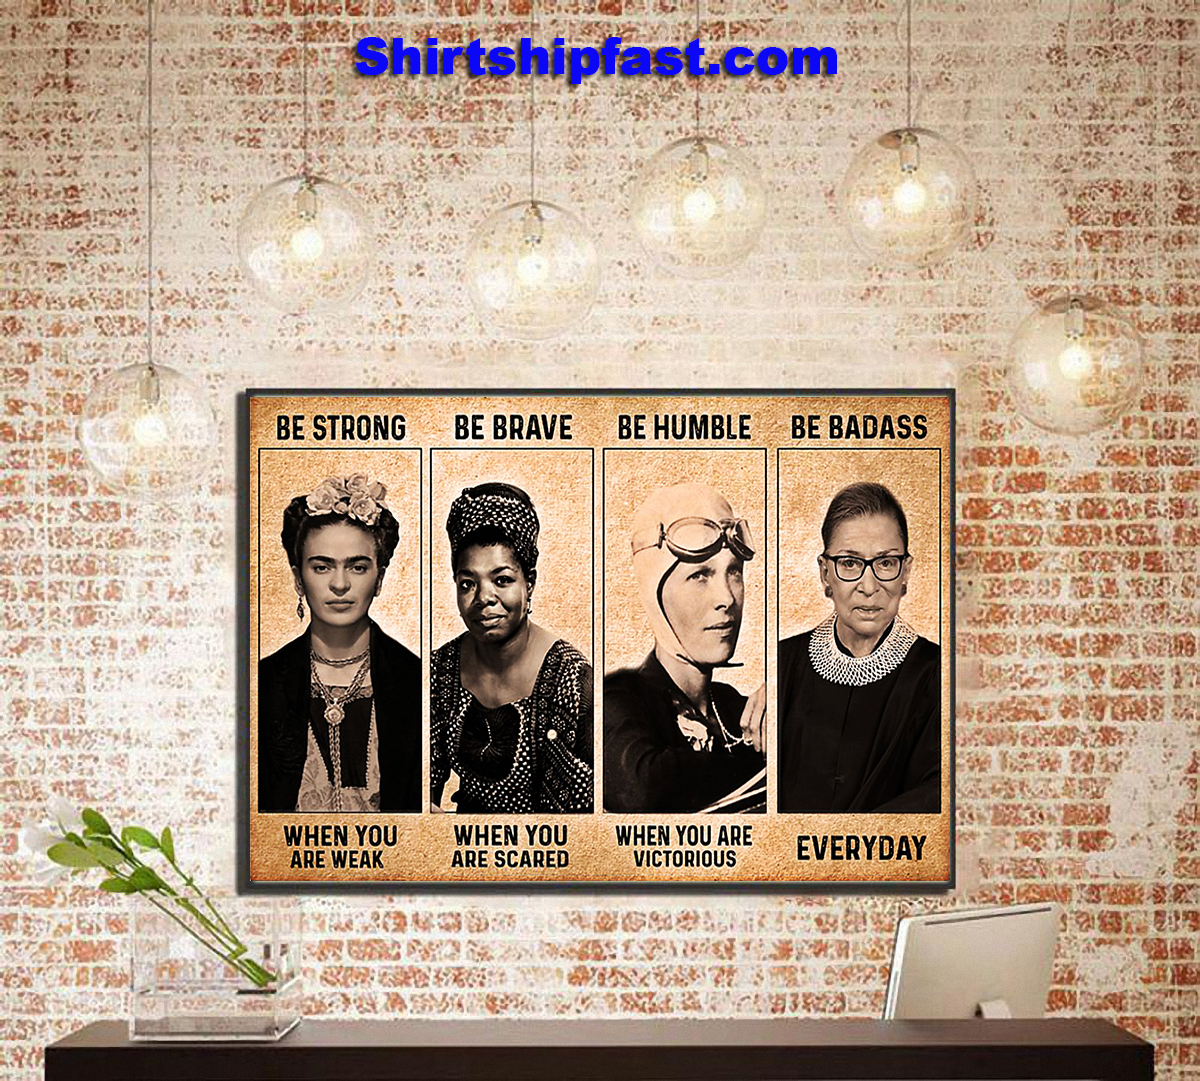 Frida Kahlo Maya Angelou feminist be strong be brave be humble be badass poster - Picture 2